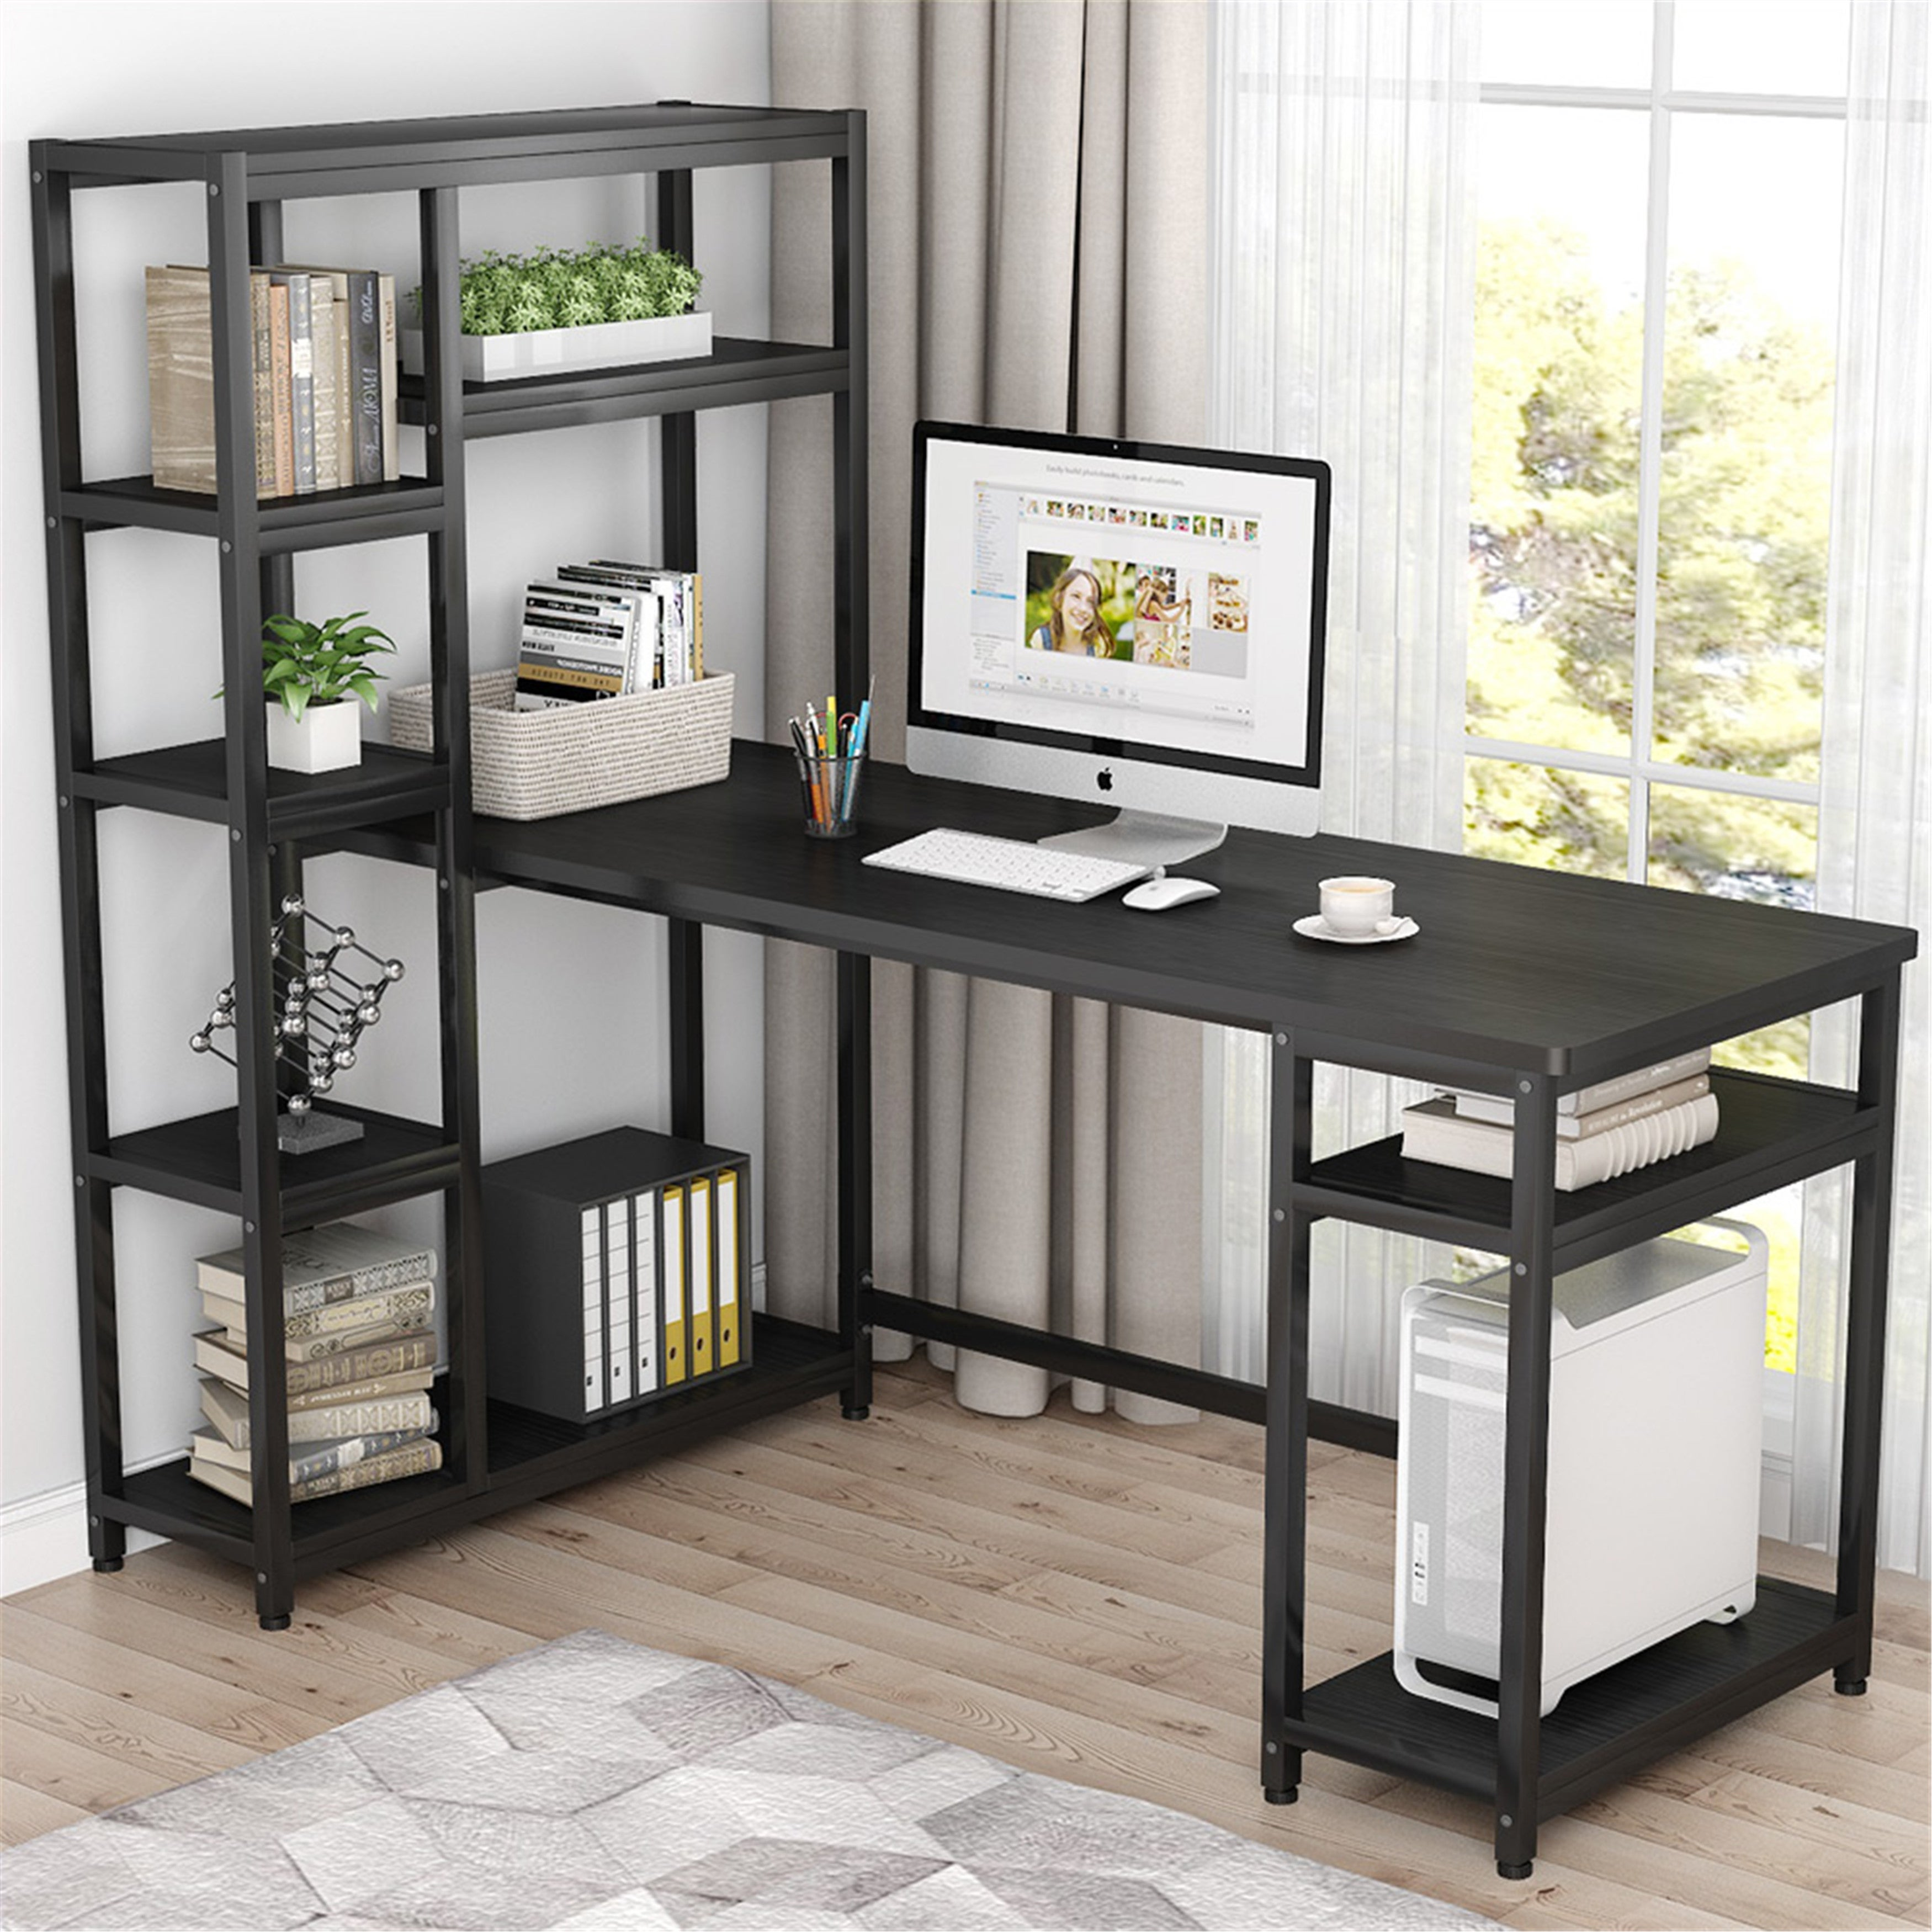 67 Reversible Large Computer Desk With 9 Storage Shelves Overstock 31514286